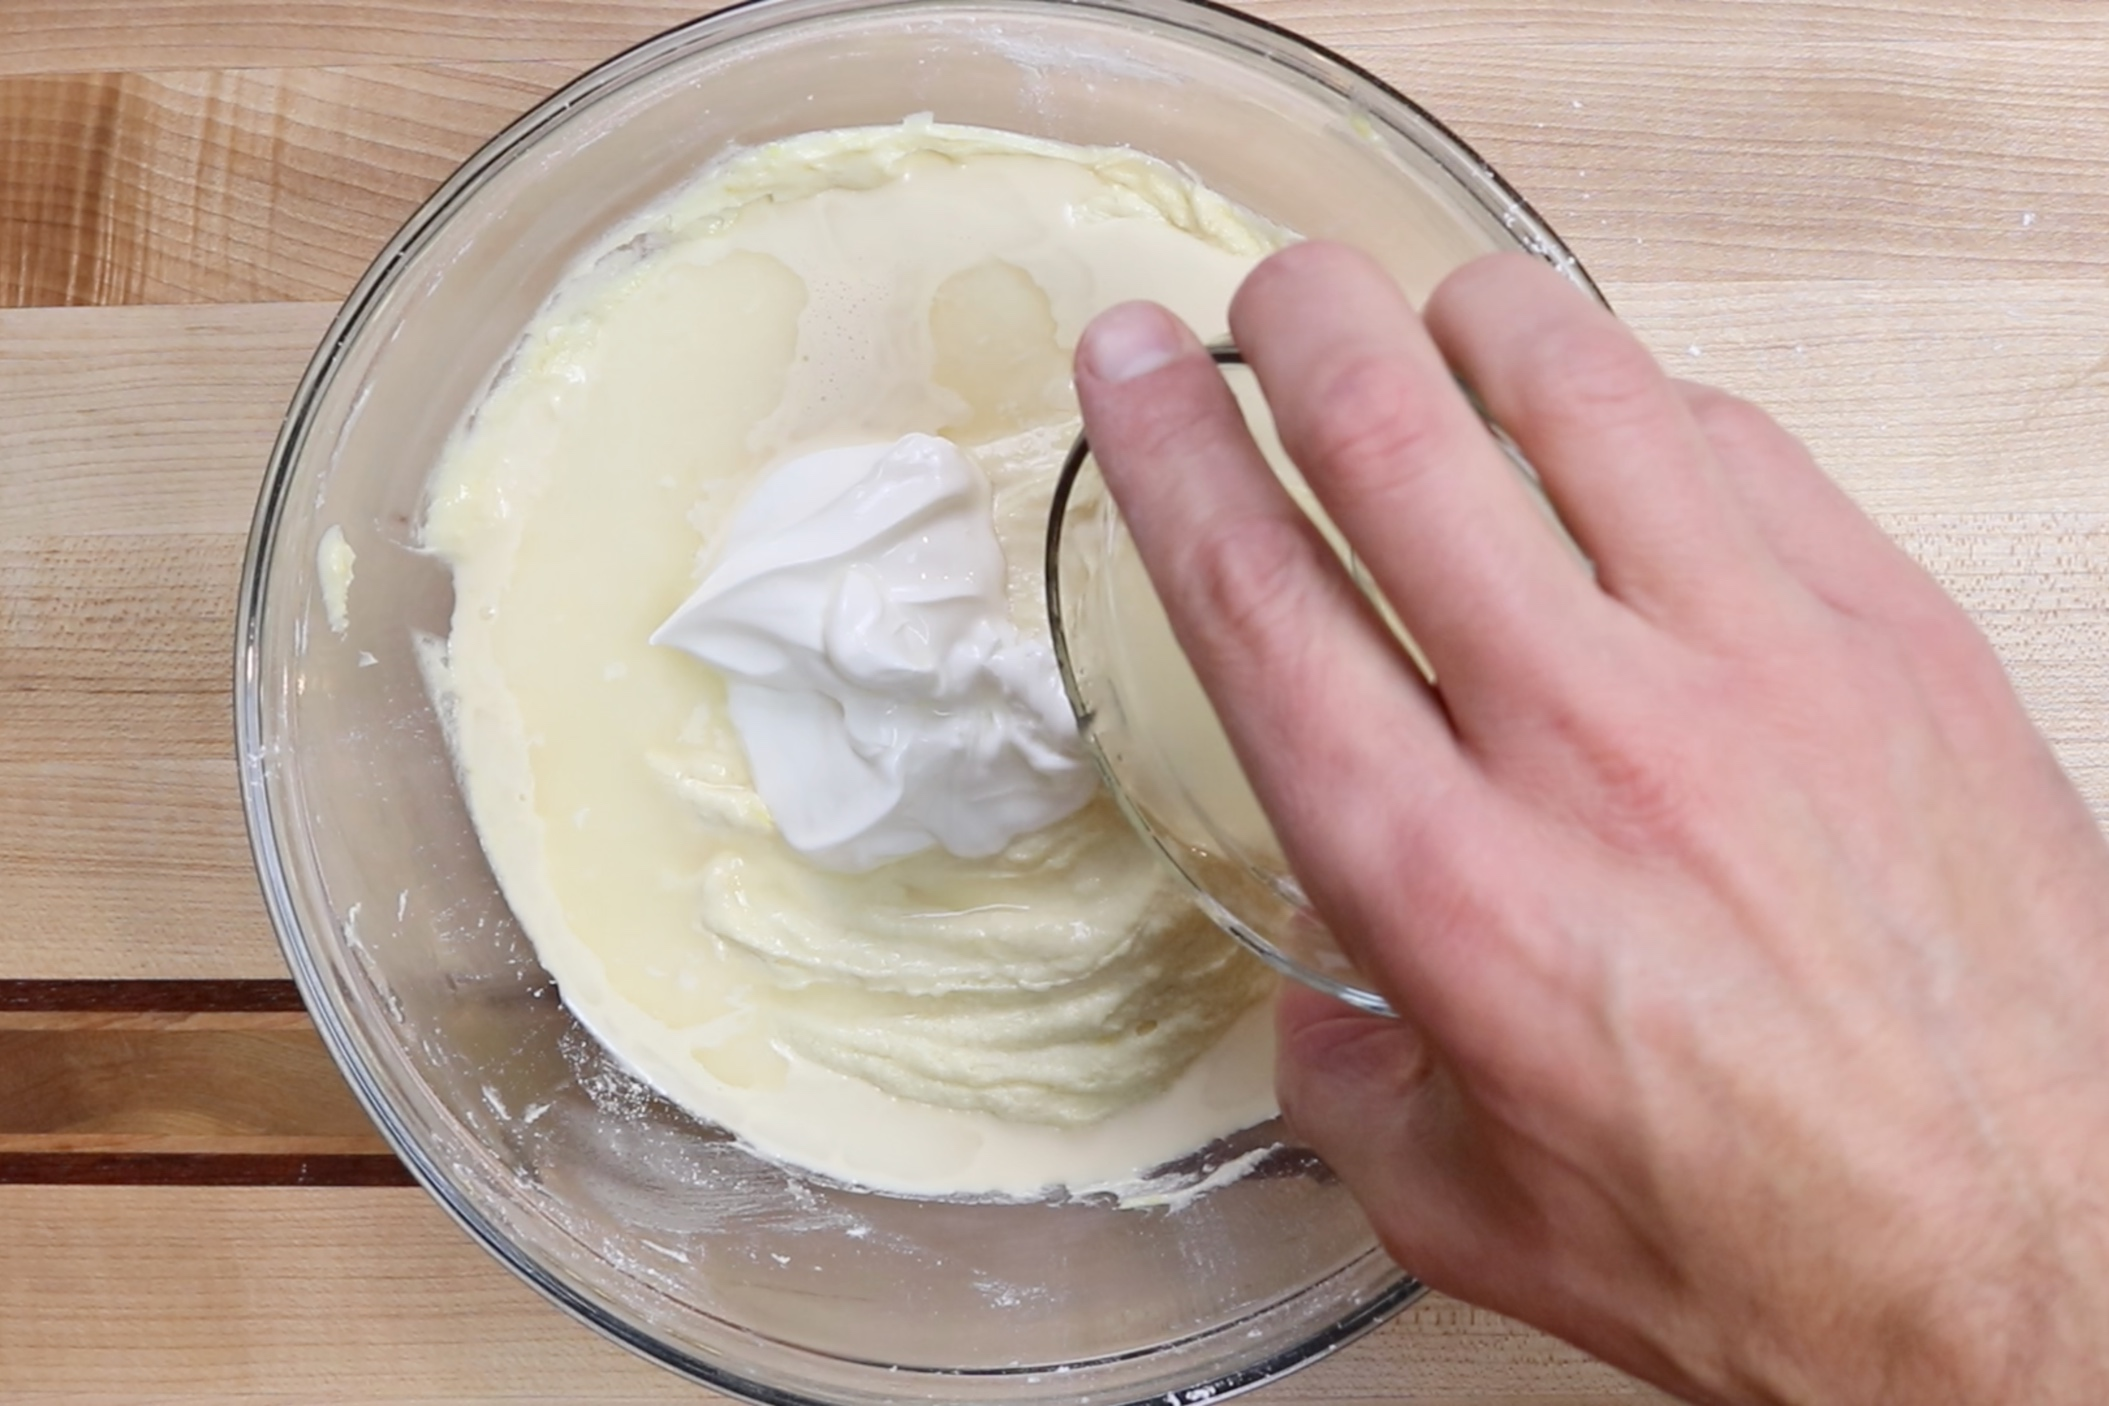 7. Stir in the milk, sour cream and lemon juice. Mix until combined. -